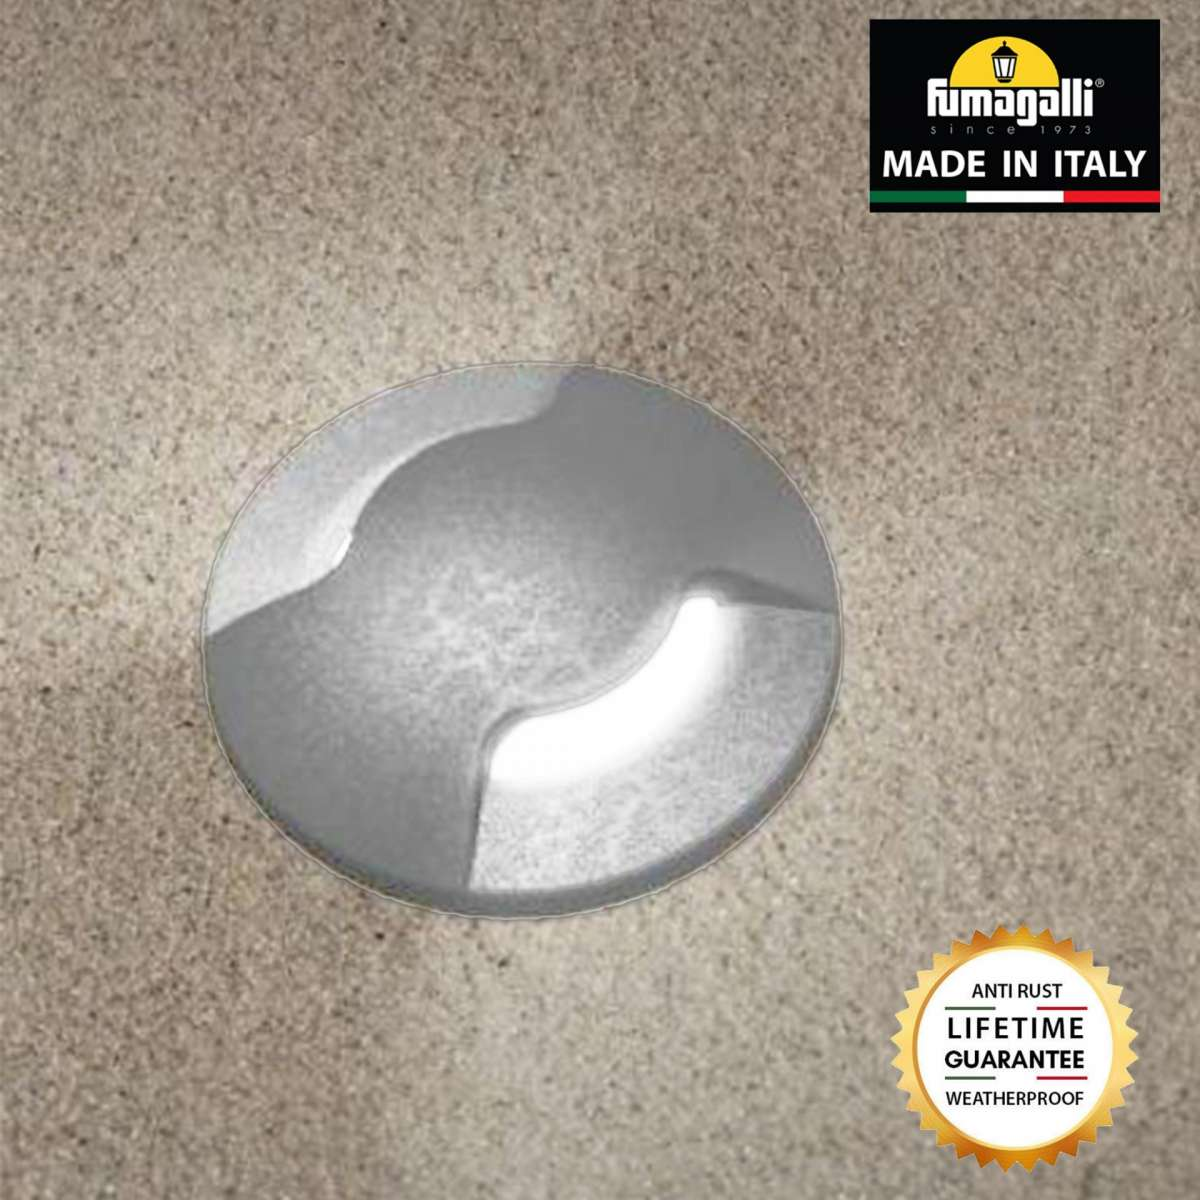 Fumagalli ALDO2LGY Aldo Round 2 Light Grey Walkover or Recessed Wall Light